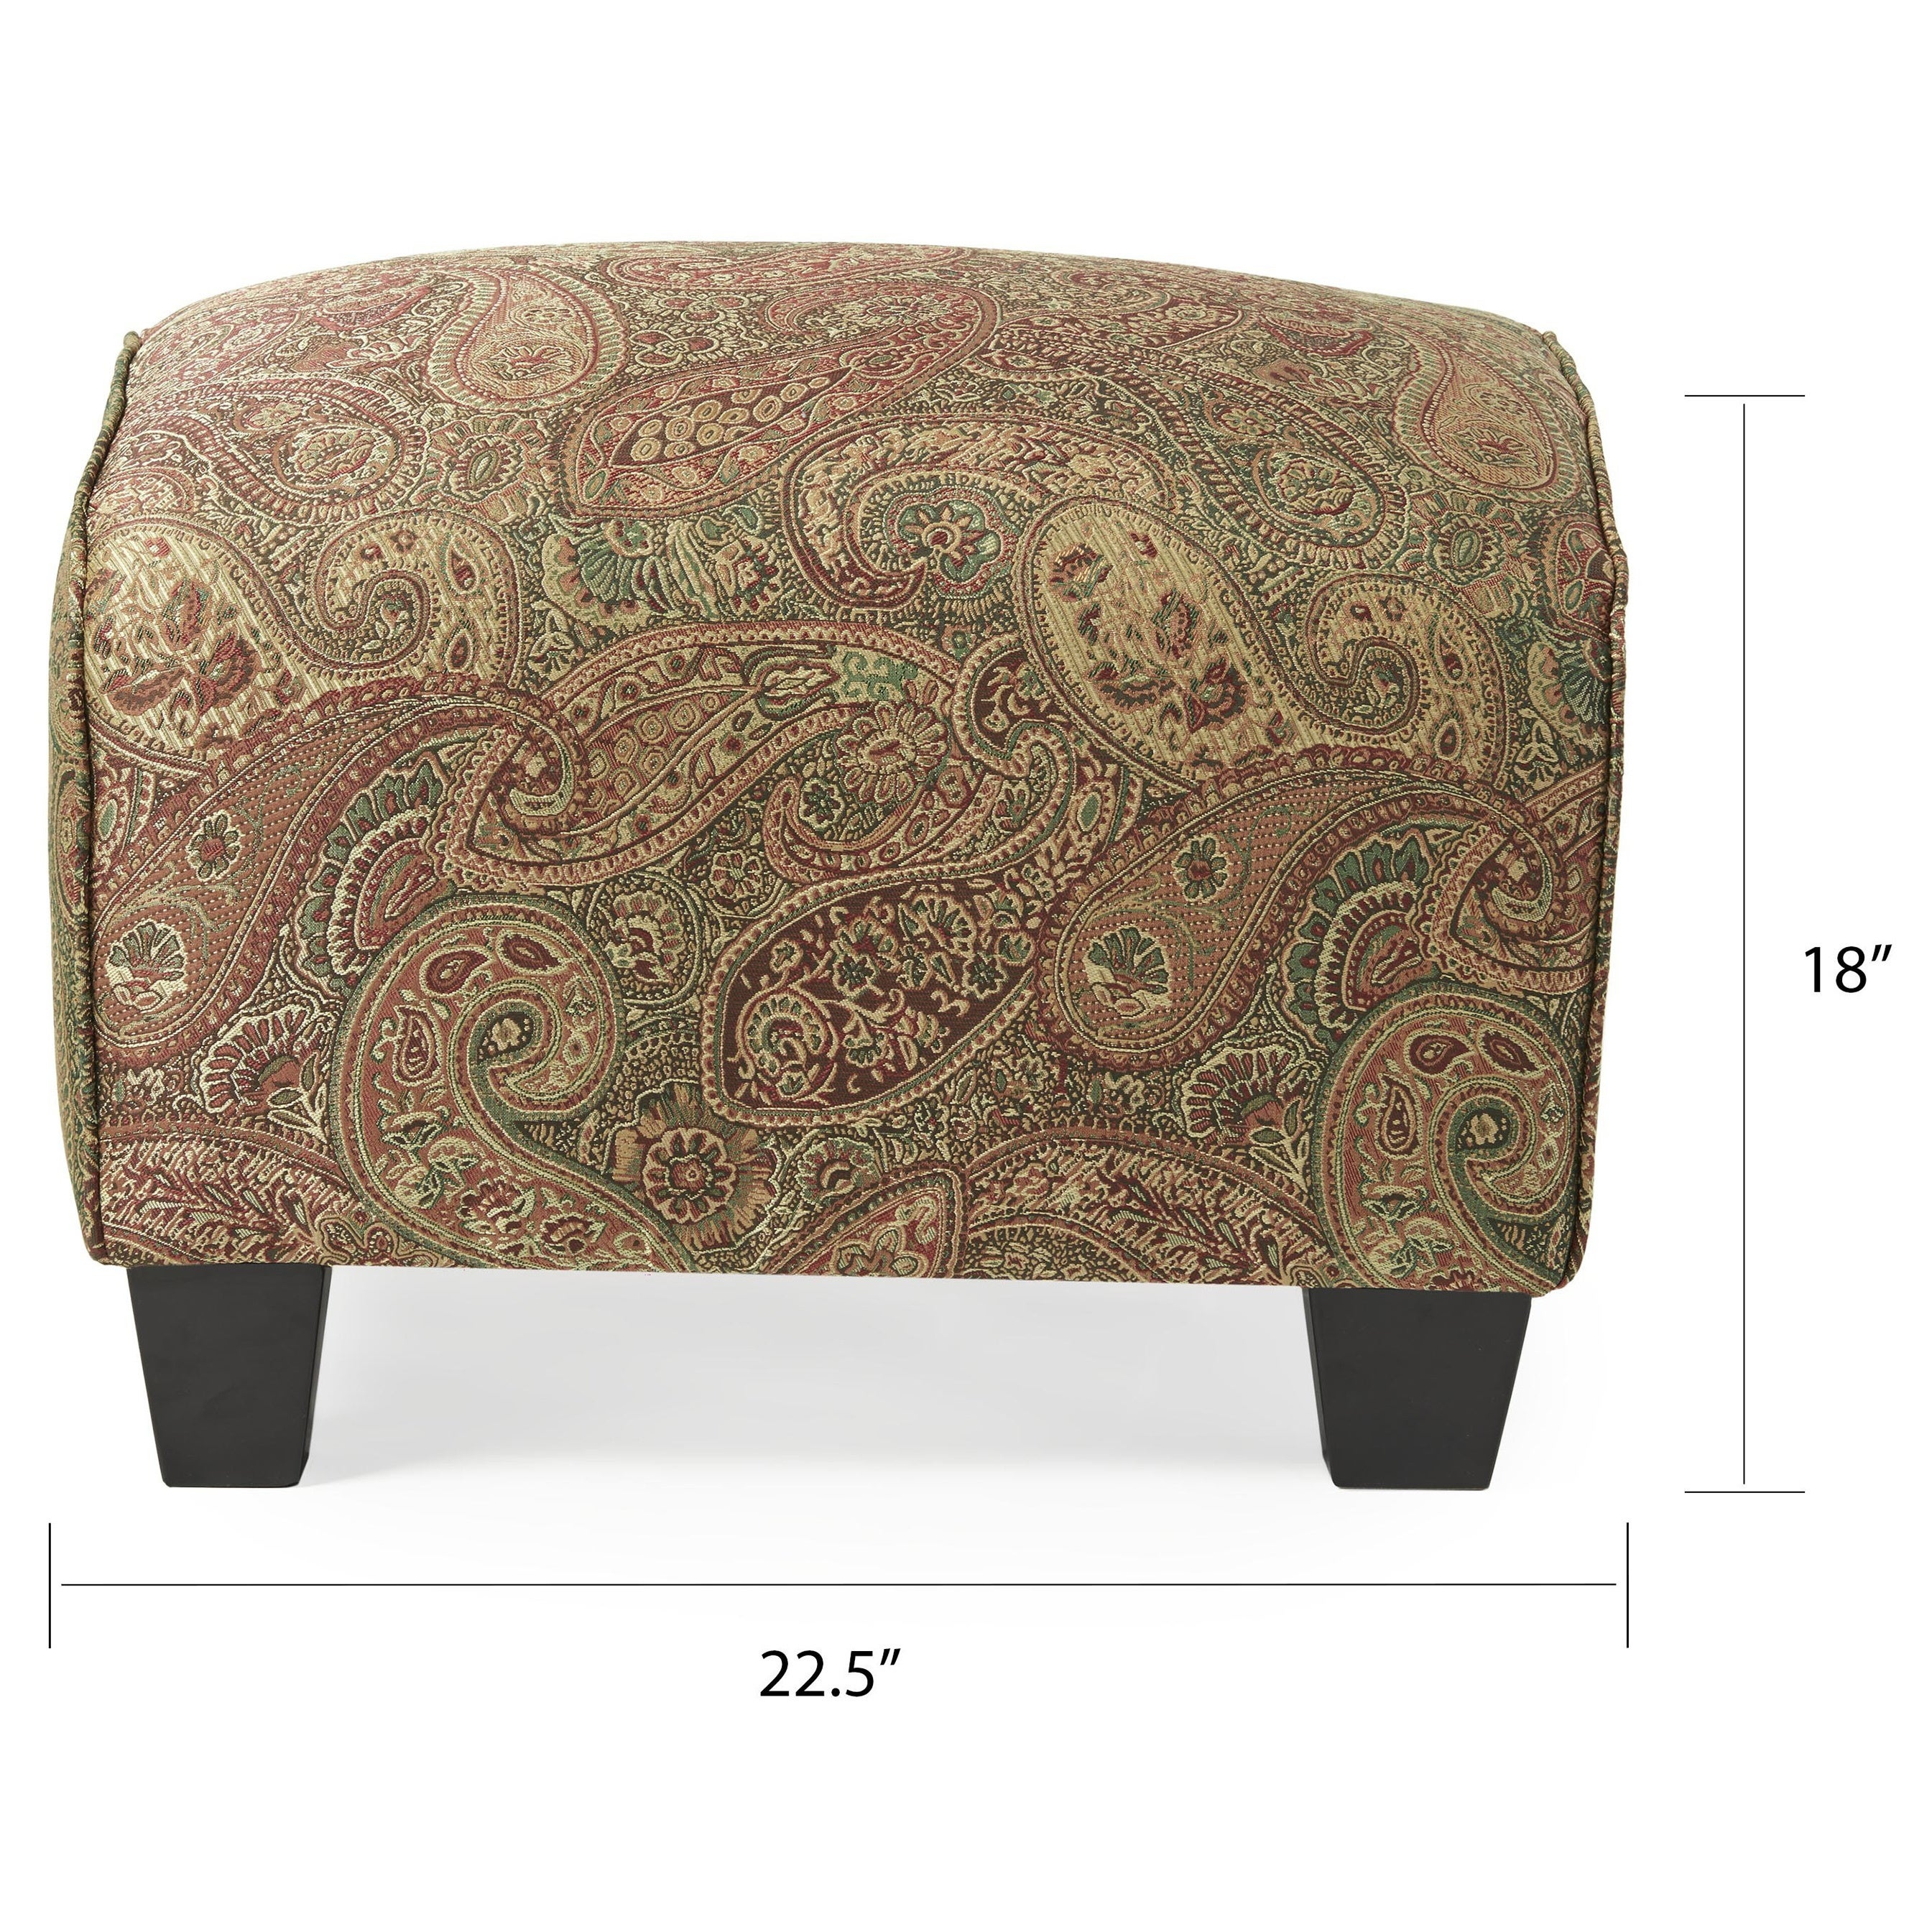 overstock chairs shipping free home chair elijah product ottoman garden today mid and set ottomans gray simple century living